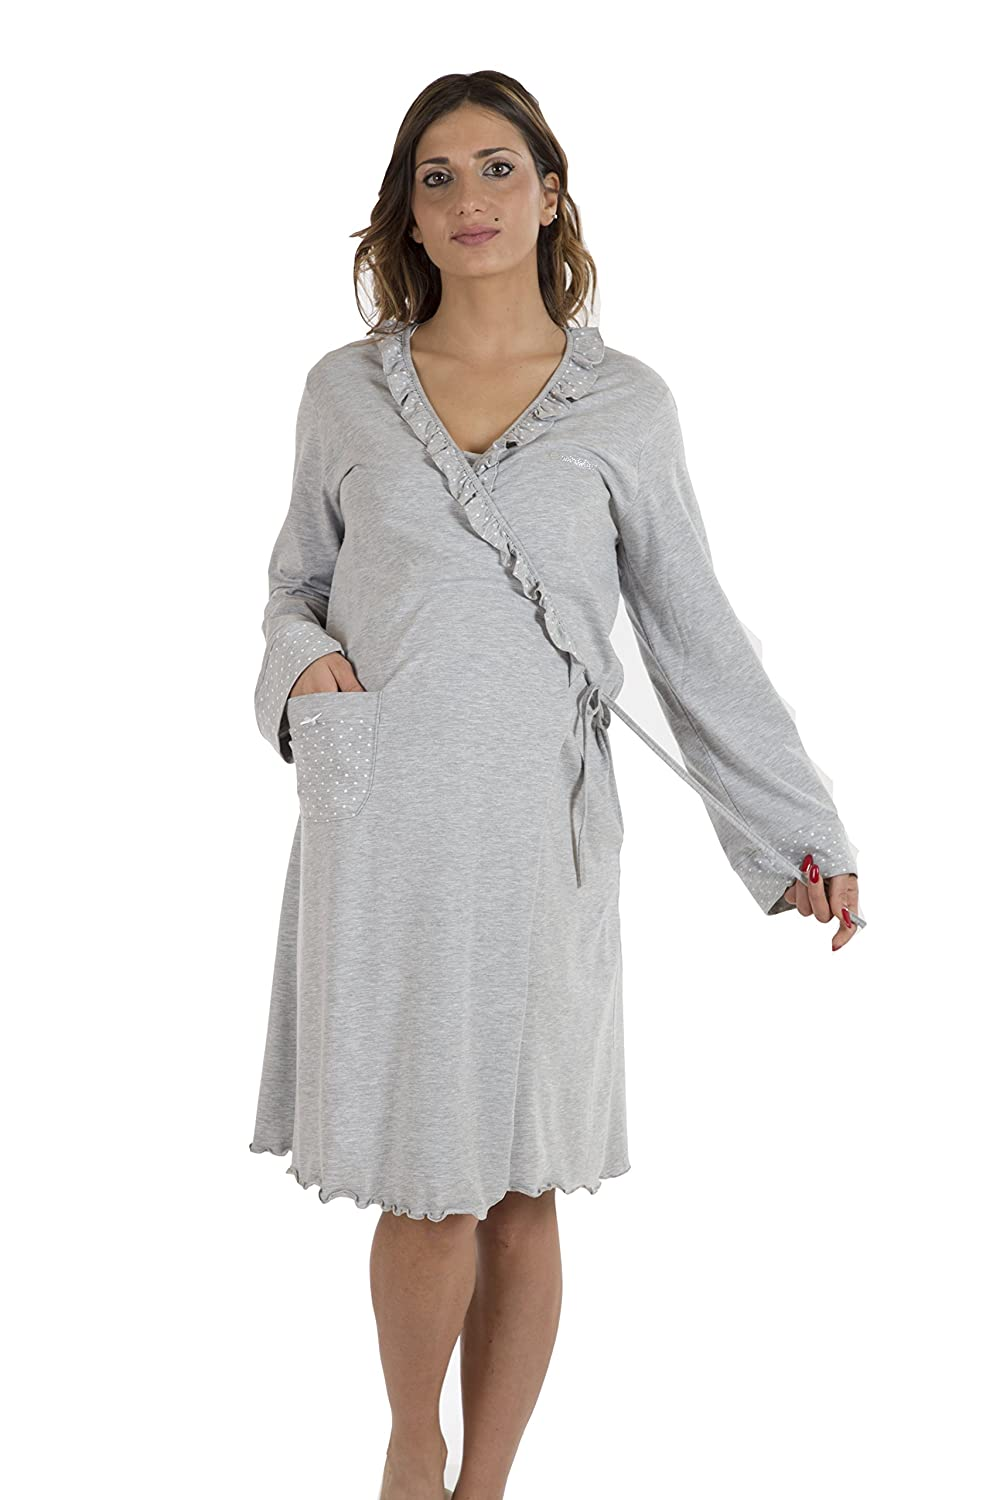 Premamy - Maternity Hospital Nightie Robe Labour Birth - Colour: Grey